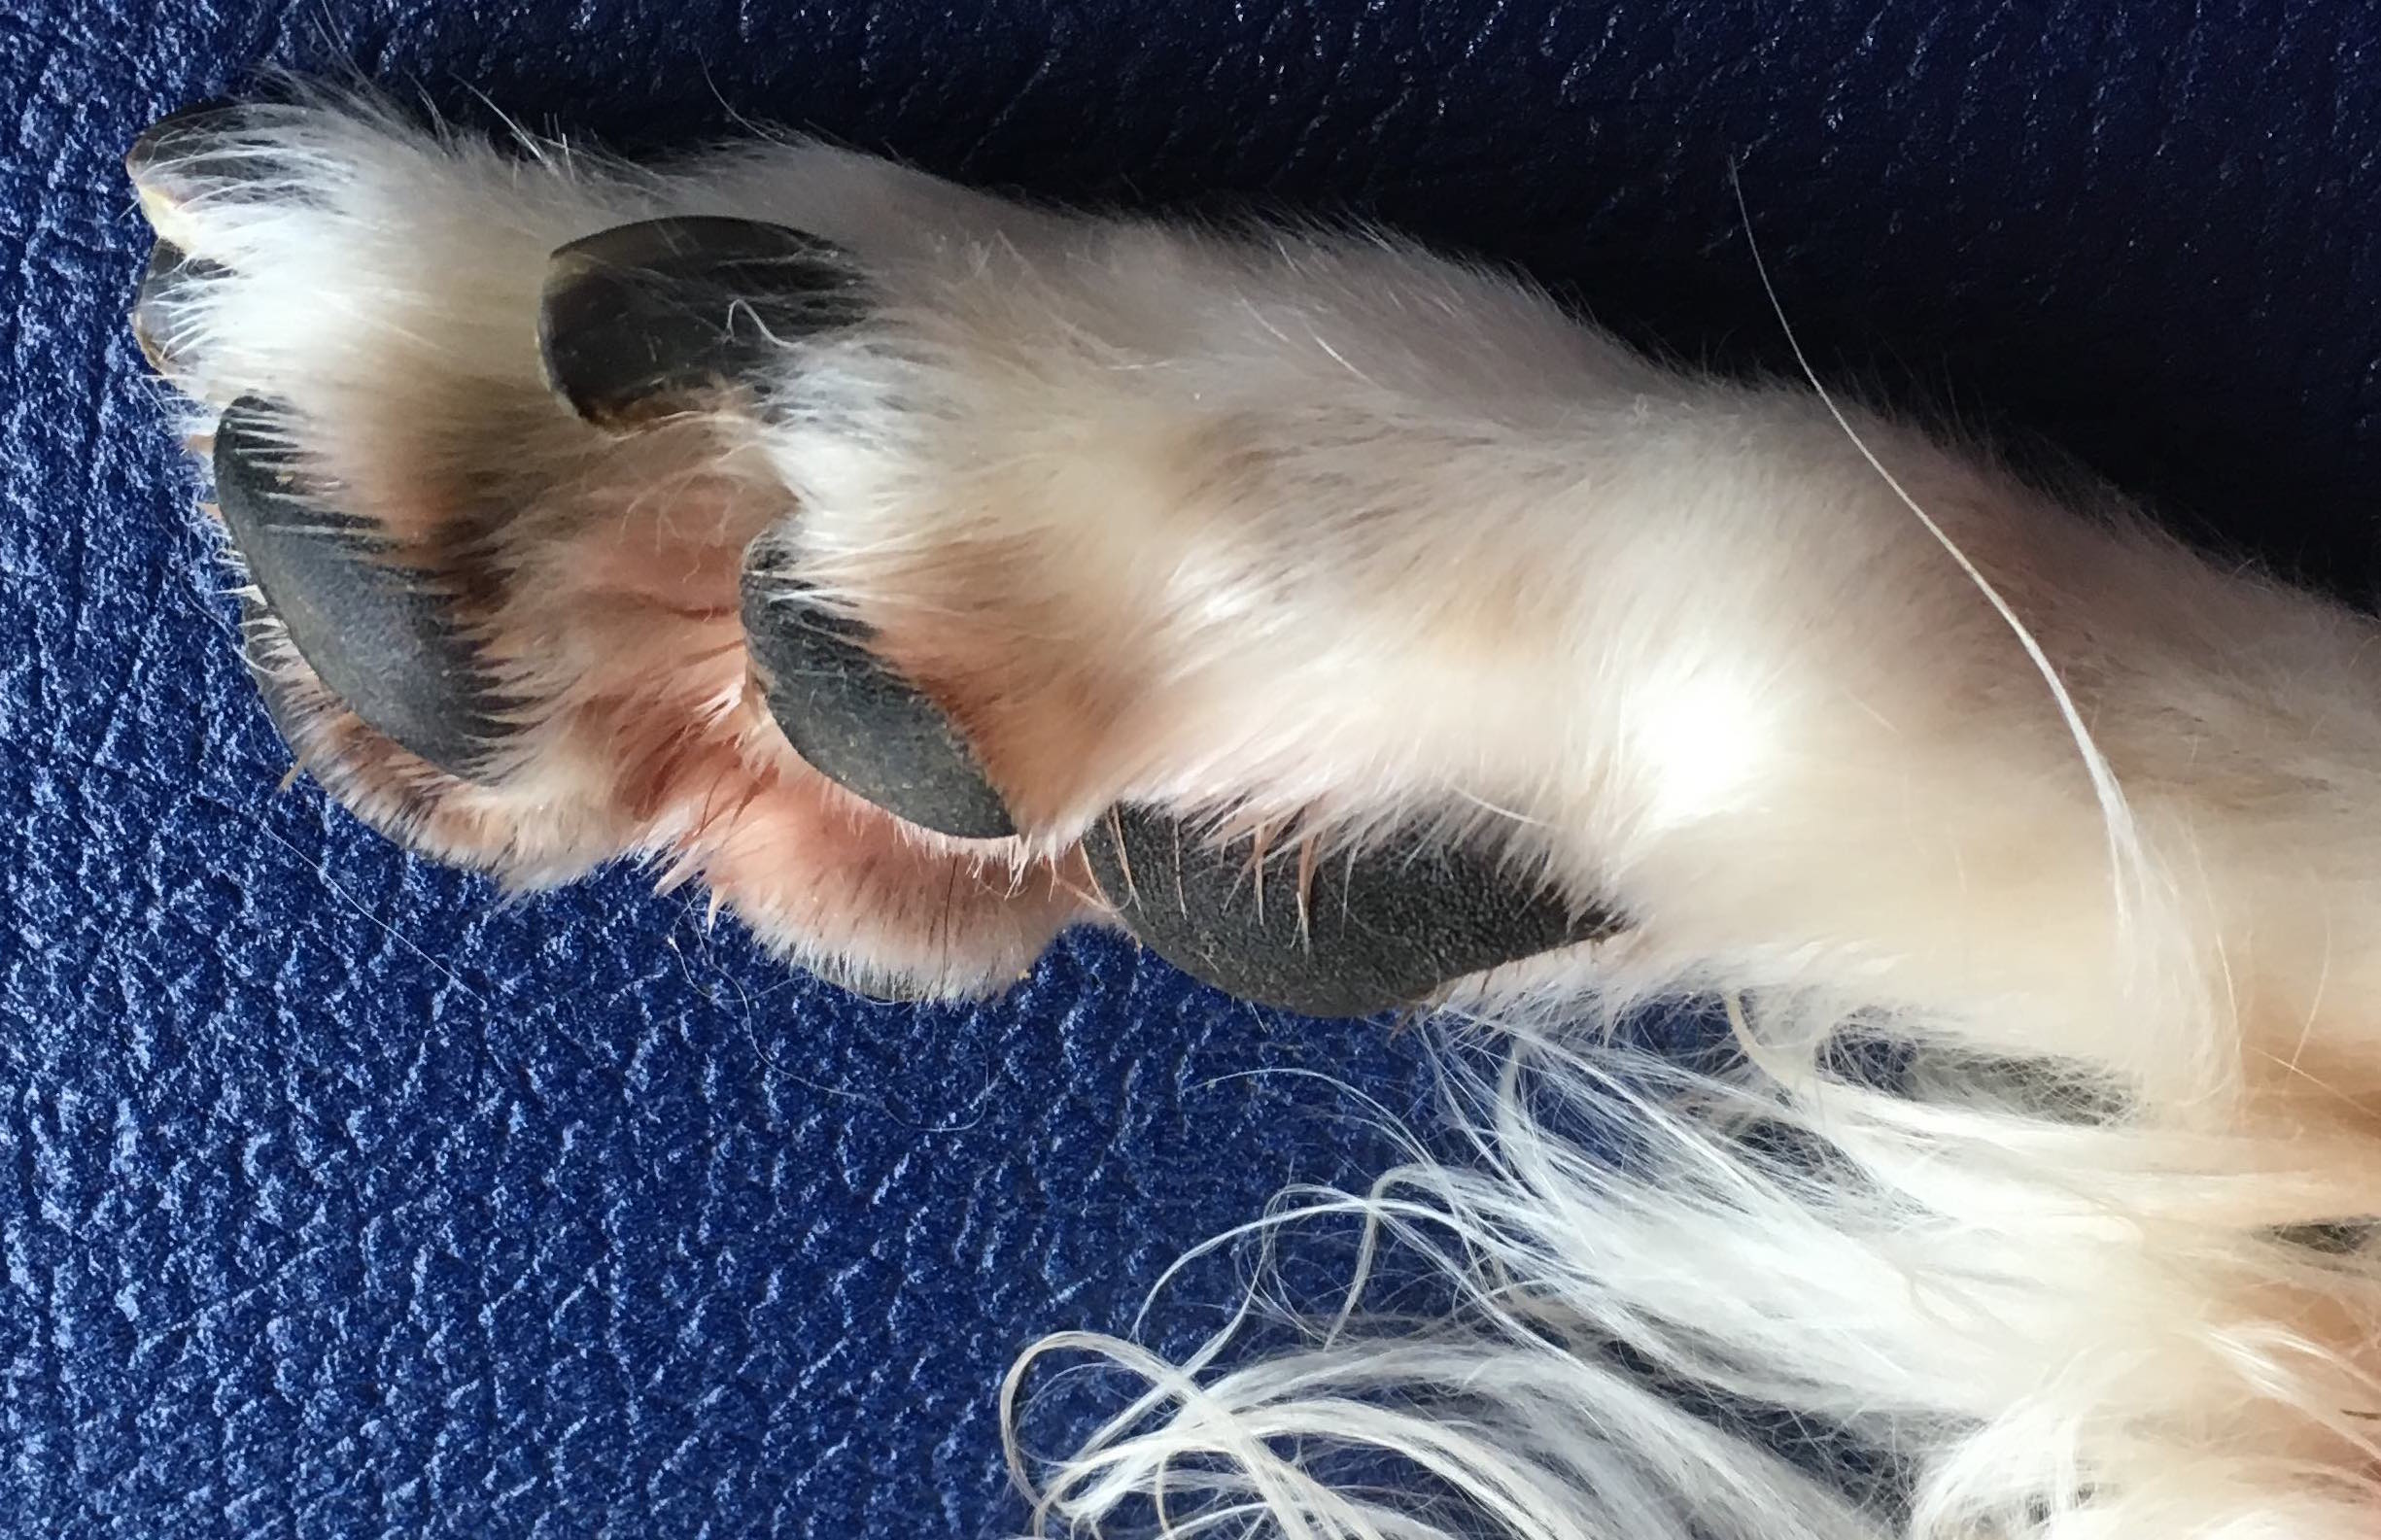 Trimmed paw with short nails